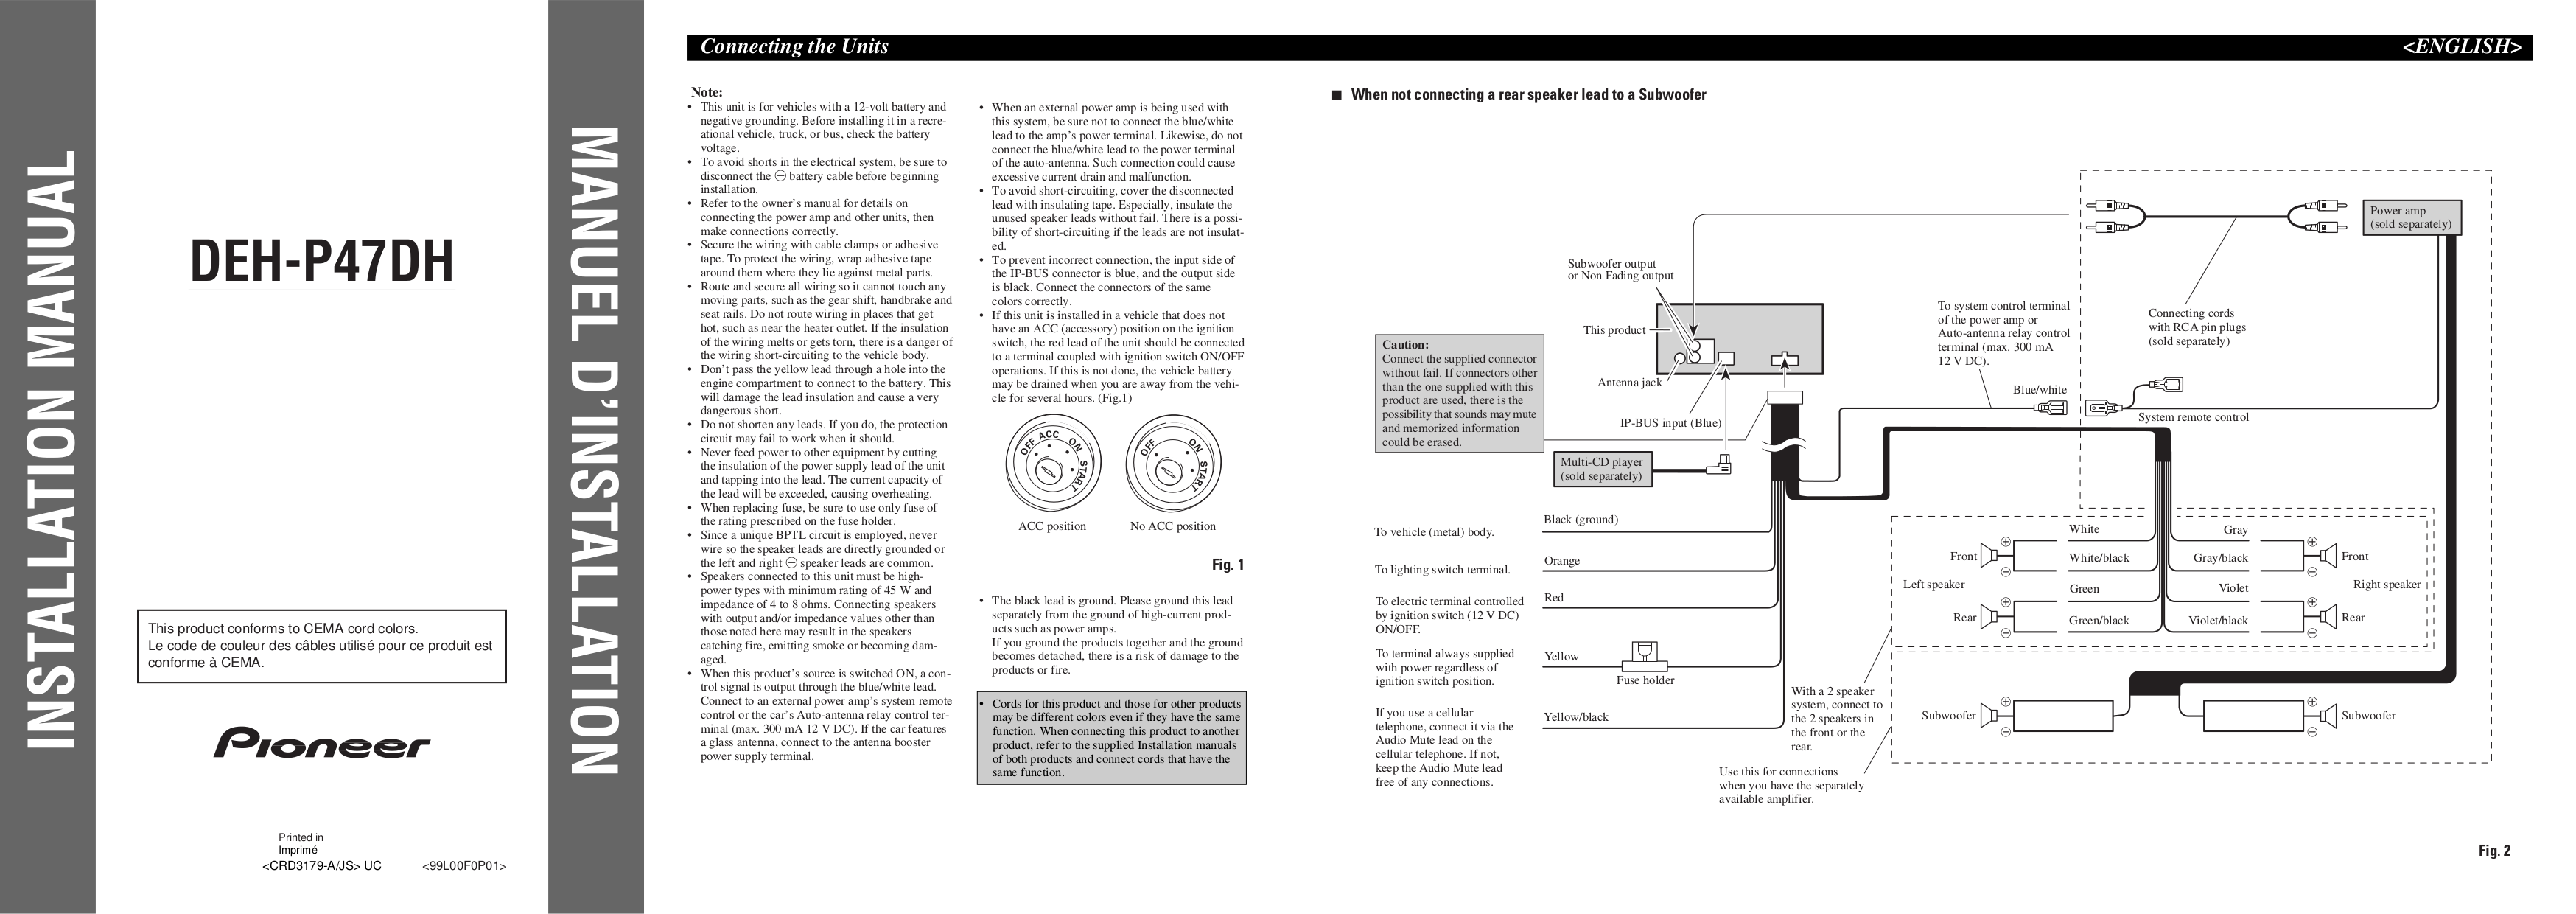 CRD3179_DEH P47DH.pdf 0 wiring diagram pioneer dehp47dh the wiring diagram readingrat net pioneer deh p47dh wiring diagram at eliteediting.co